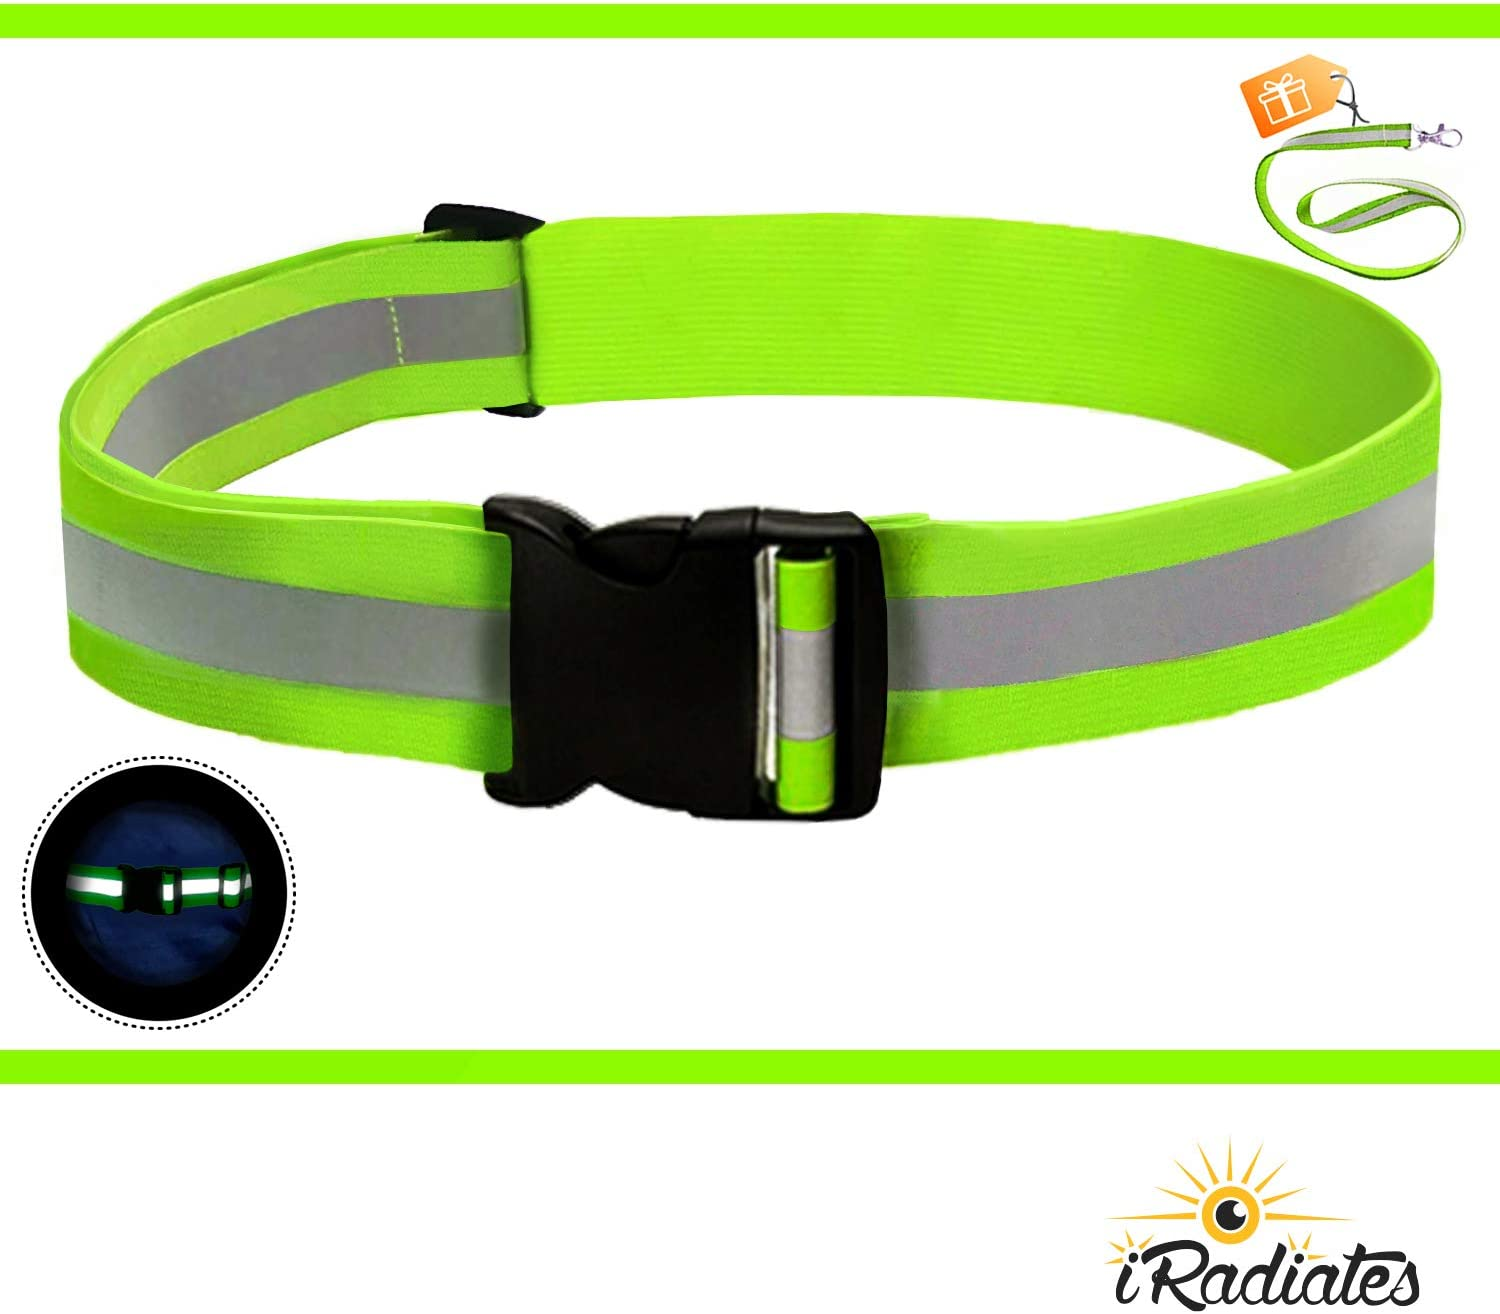 iRadiate Reflective Bands Reflector Running Gear - Adjustable Reflective Armband Arm Wrist Ankle Leg Band - Reflective Tape Strap for Clothing Biking and Safety Night Walking (Belt Green)